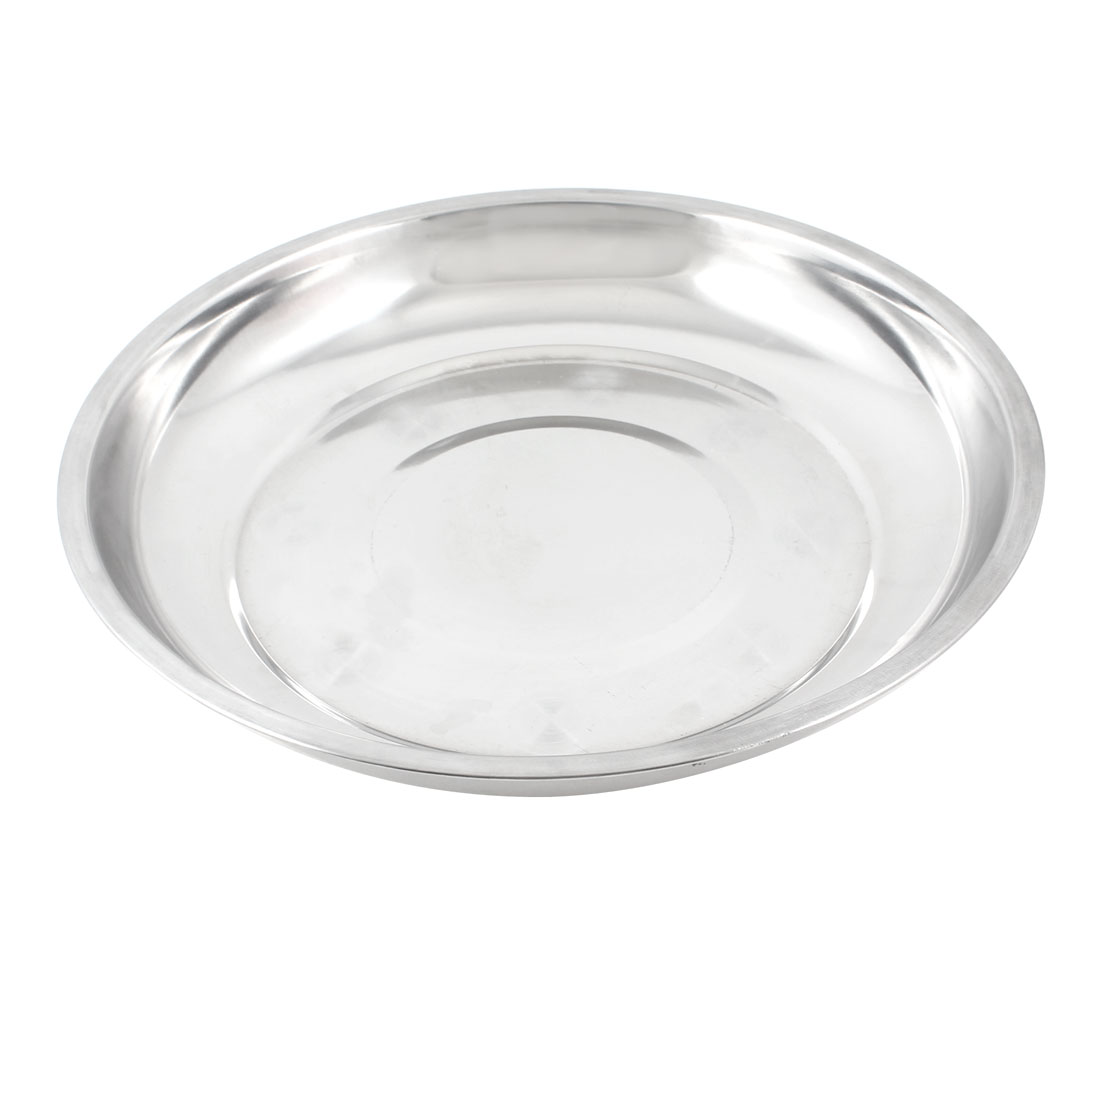 23cm x 3cm Round Silver Tone Stainless Steel Dinner Dish Plate Food Holder